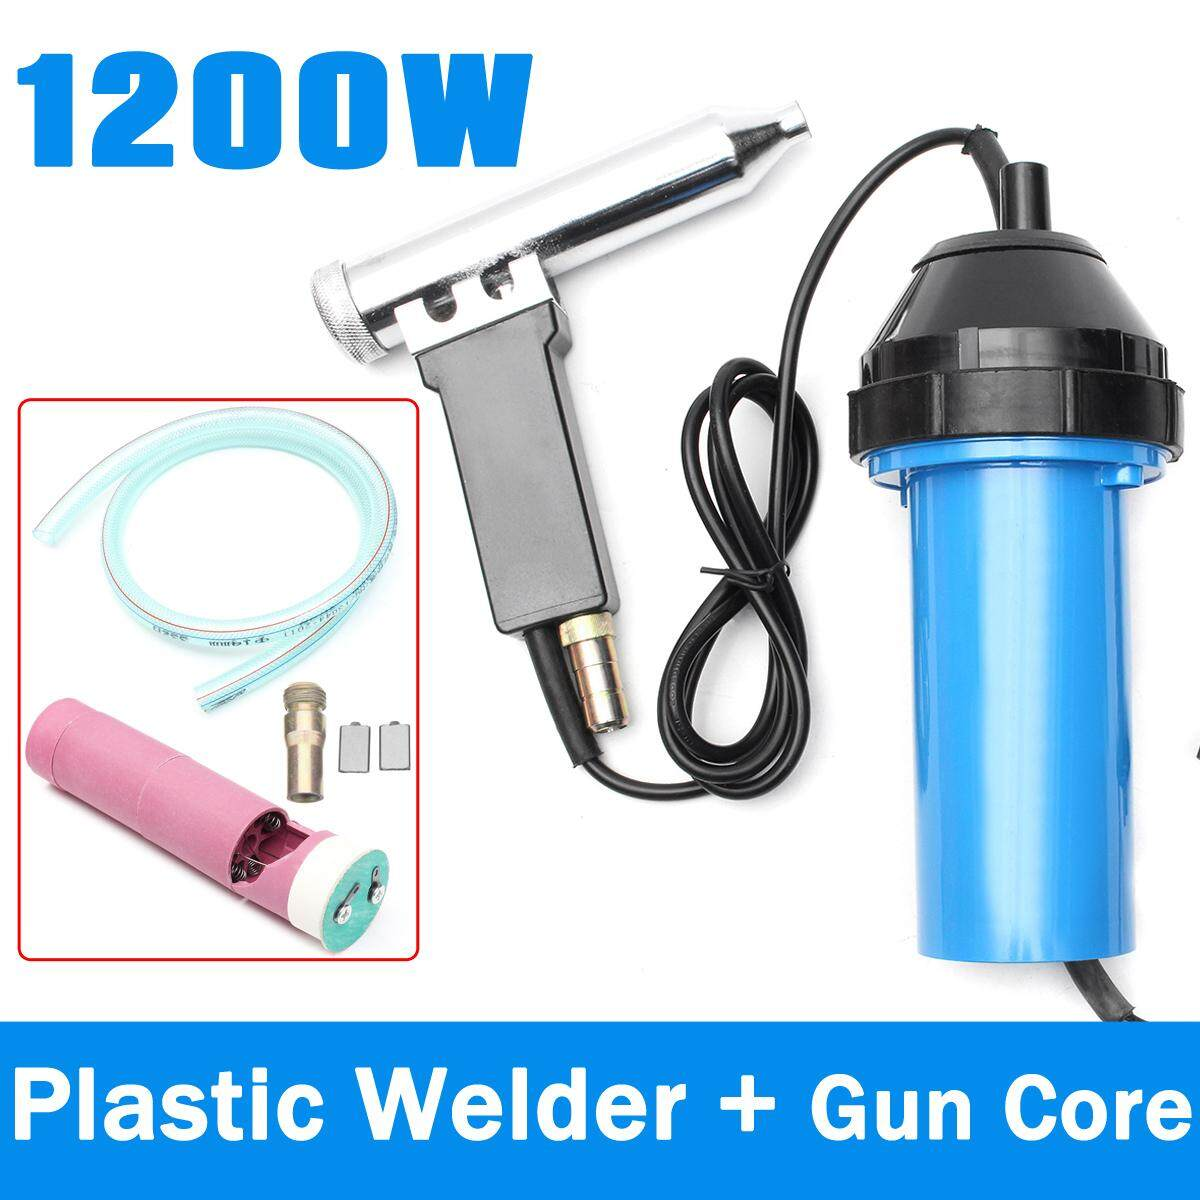 1200W Plastic Hot Air Welding With Core Plastic Welding Kit Hot Air Tool 50-550℃